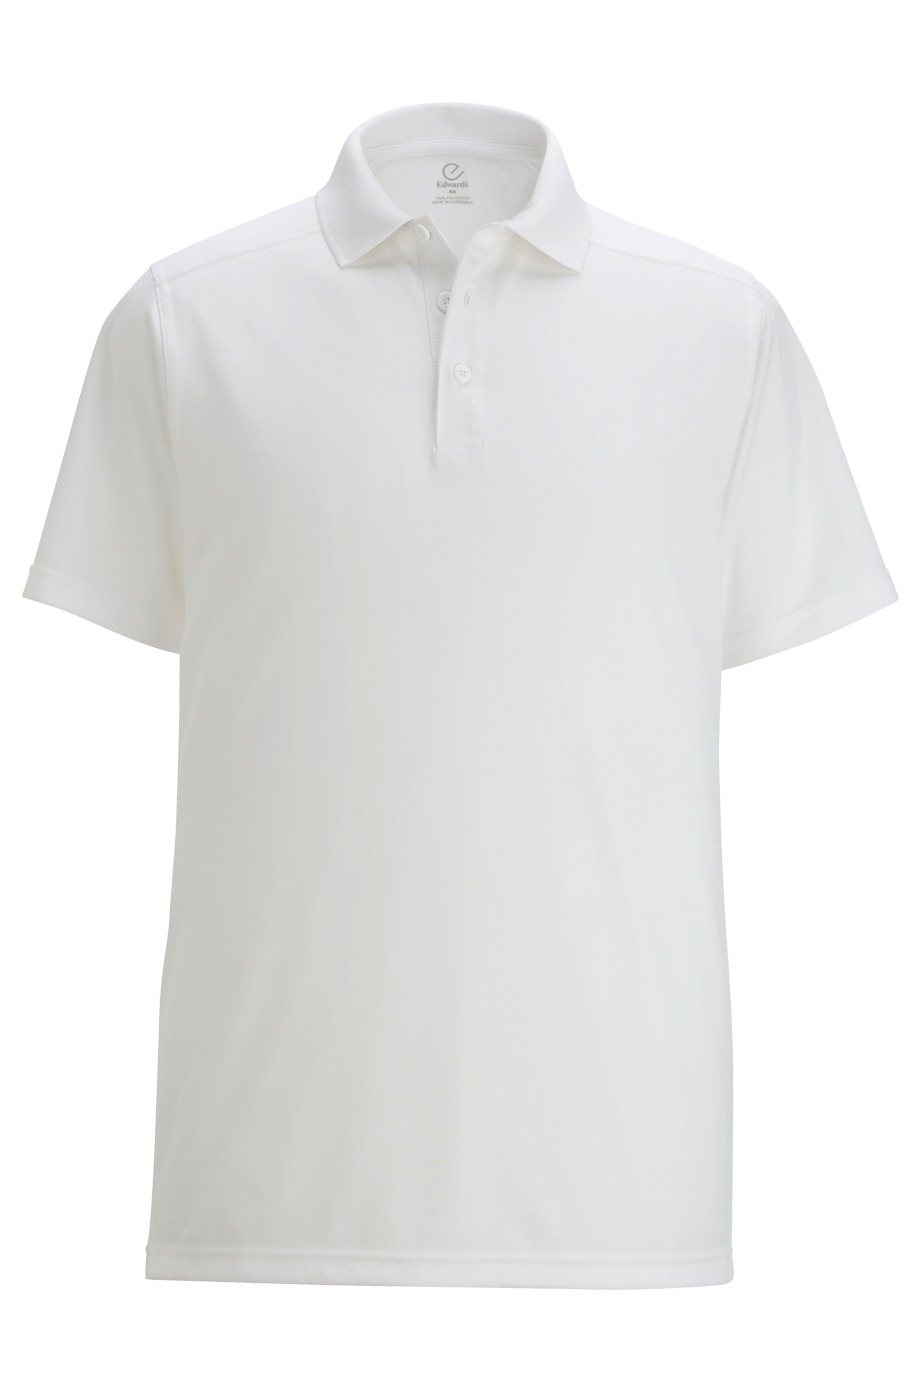 Edwards Garment 1512 - Mens' Snag-Proof Polo